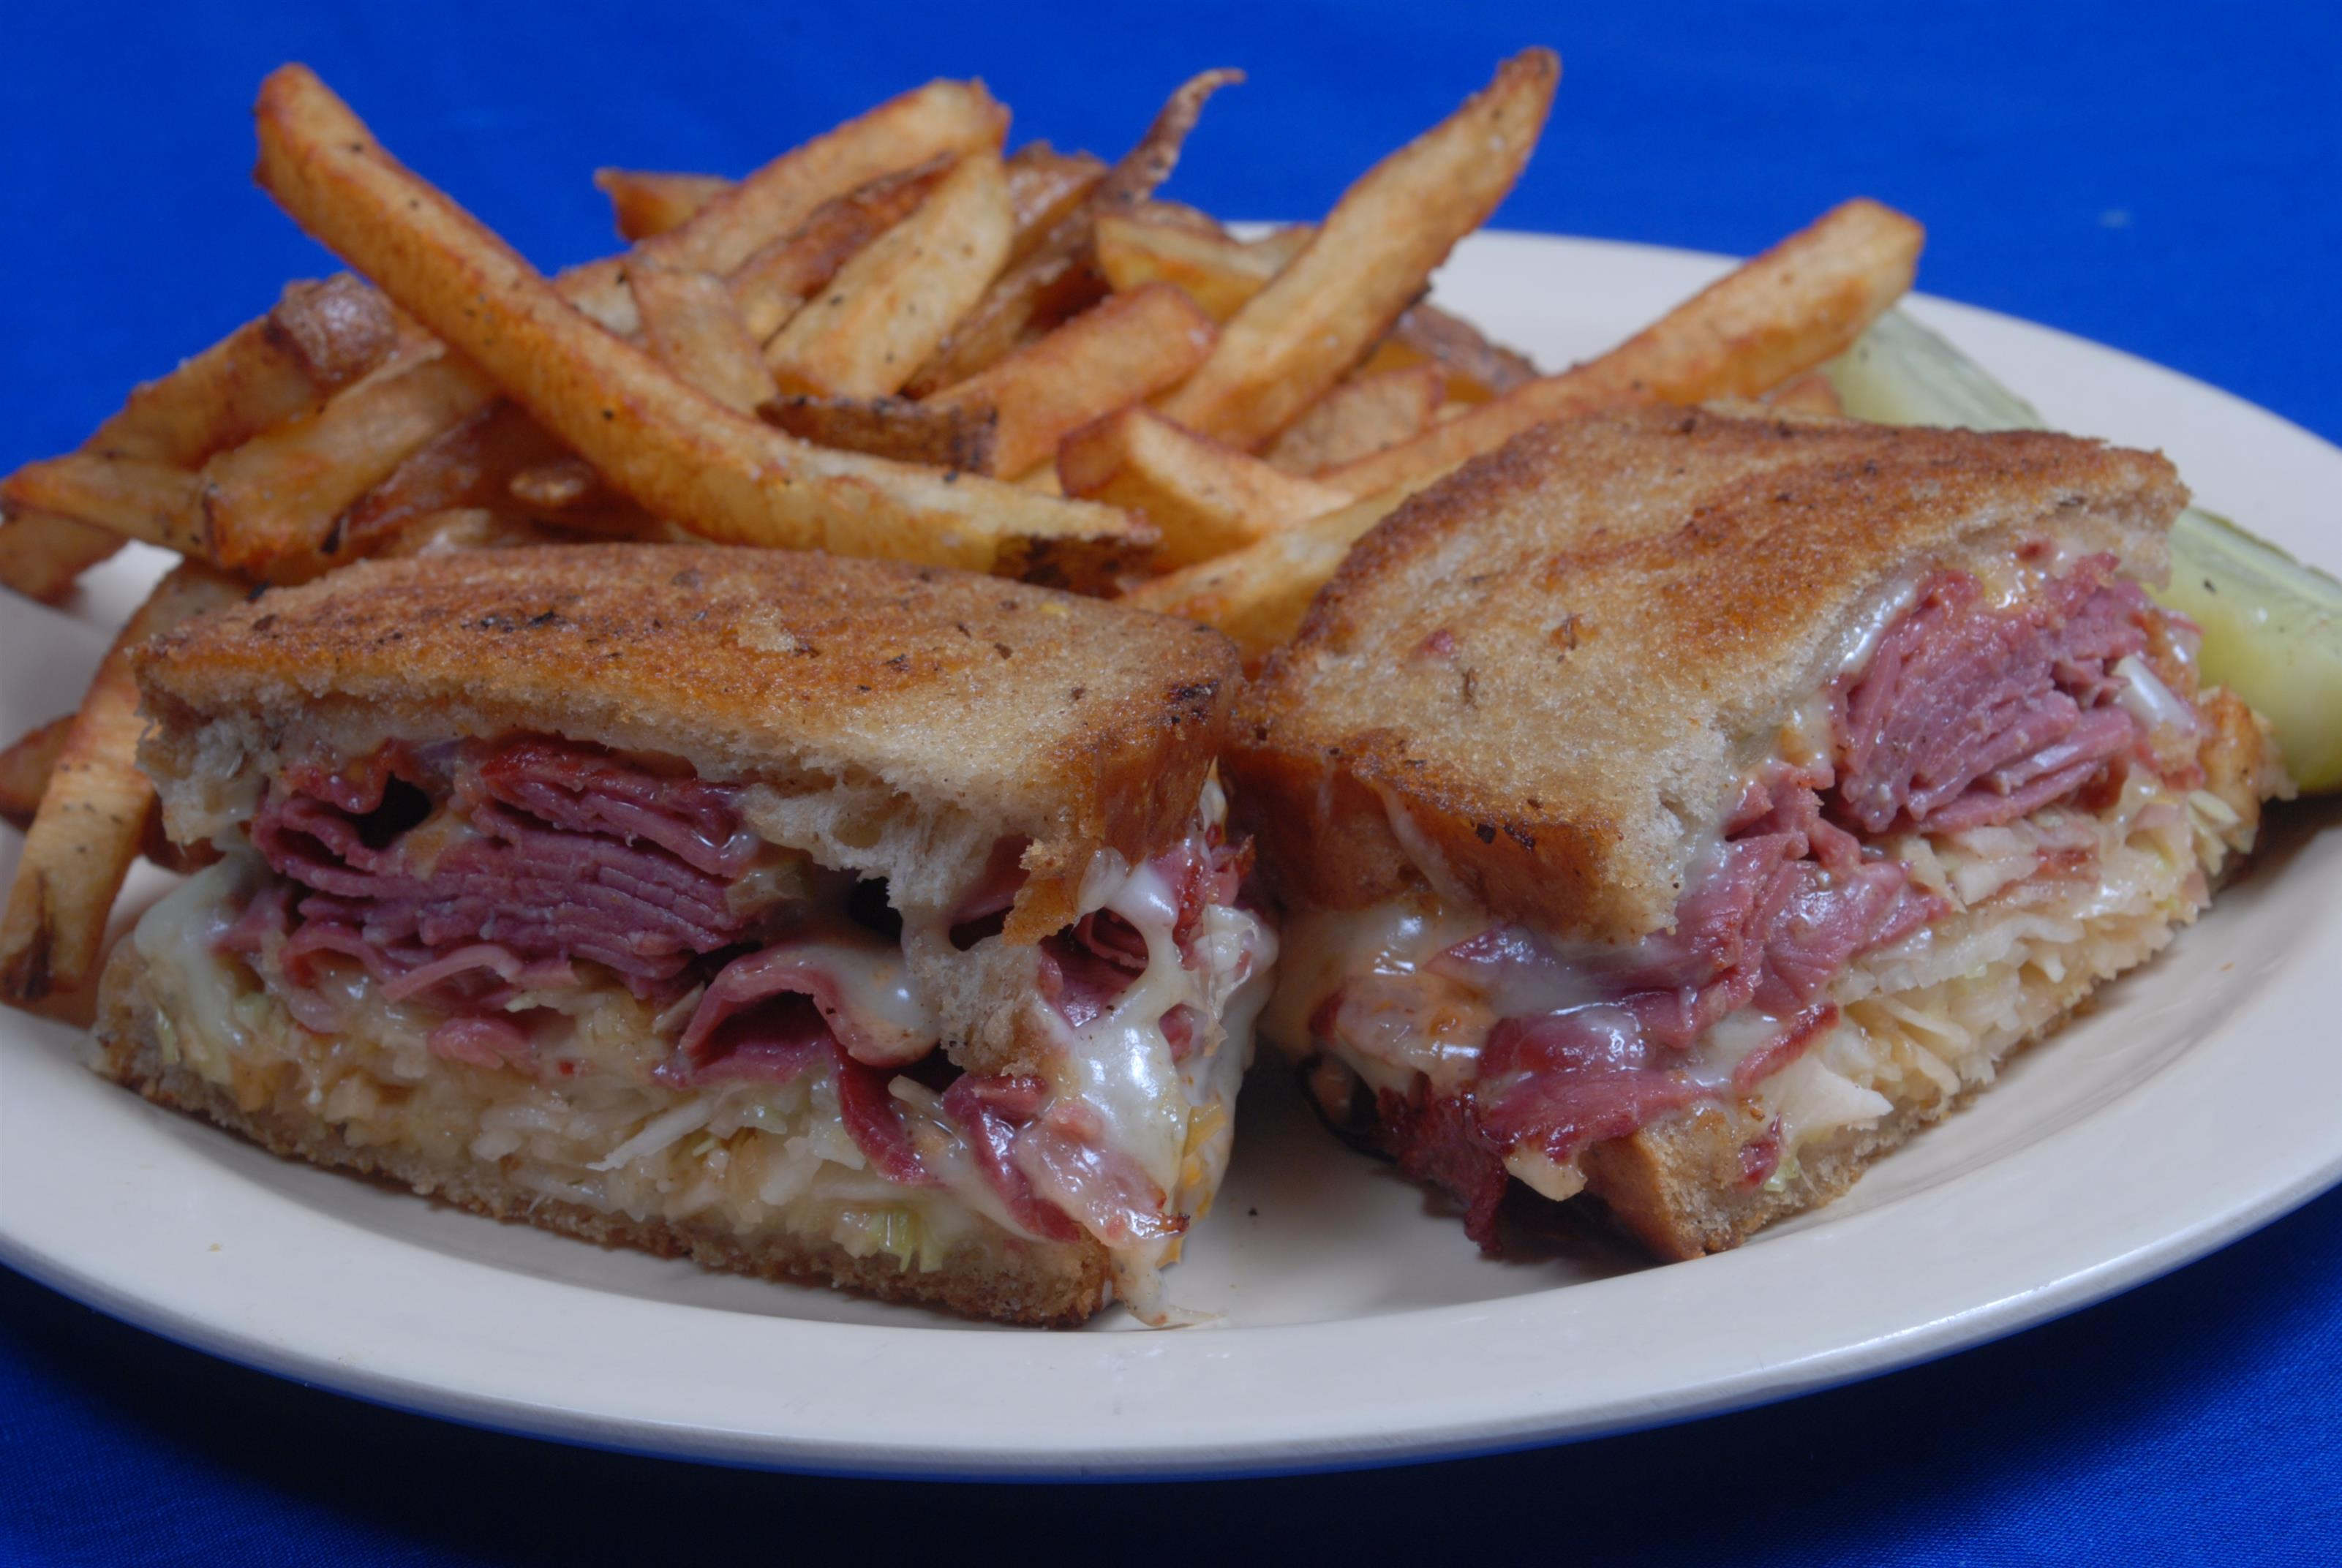 Rueben sandwich served with French fries